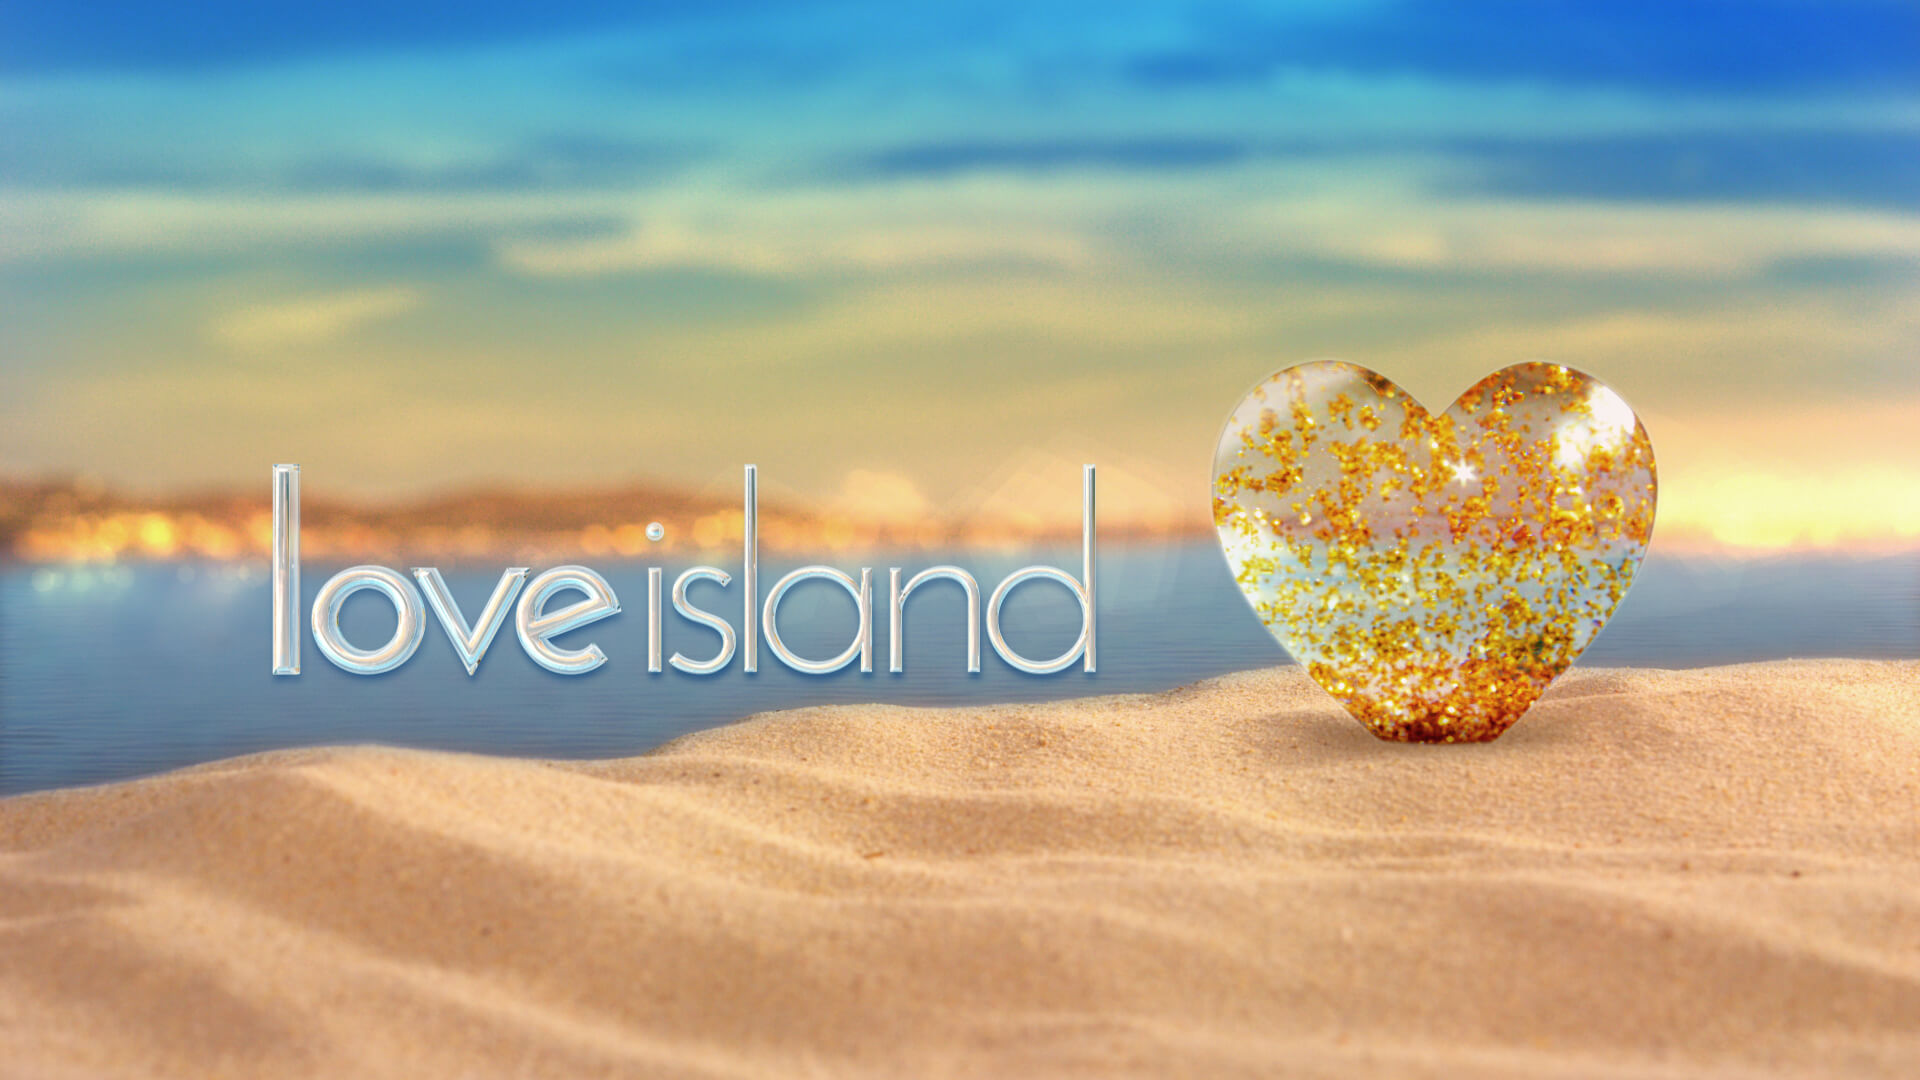 Love Island screen with sea, sand and glittering heart